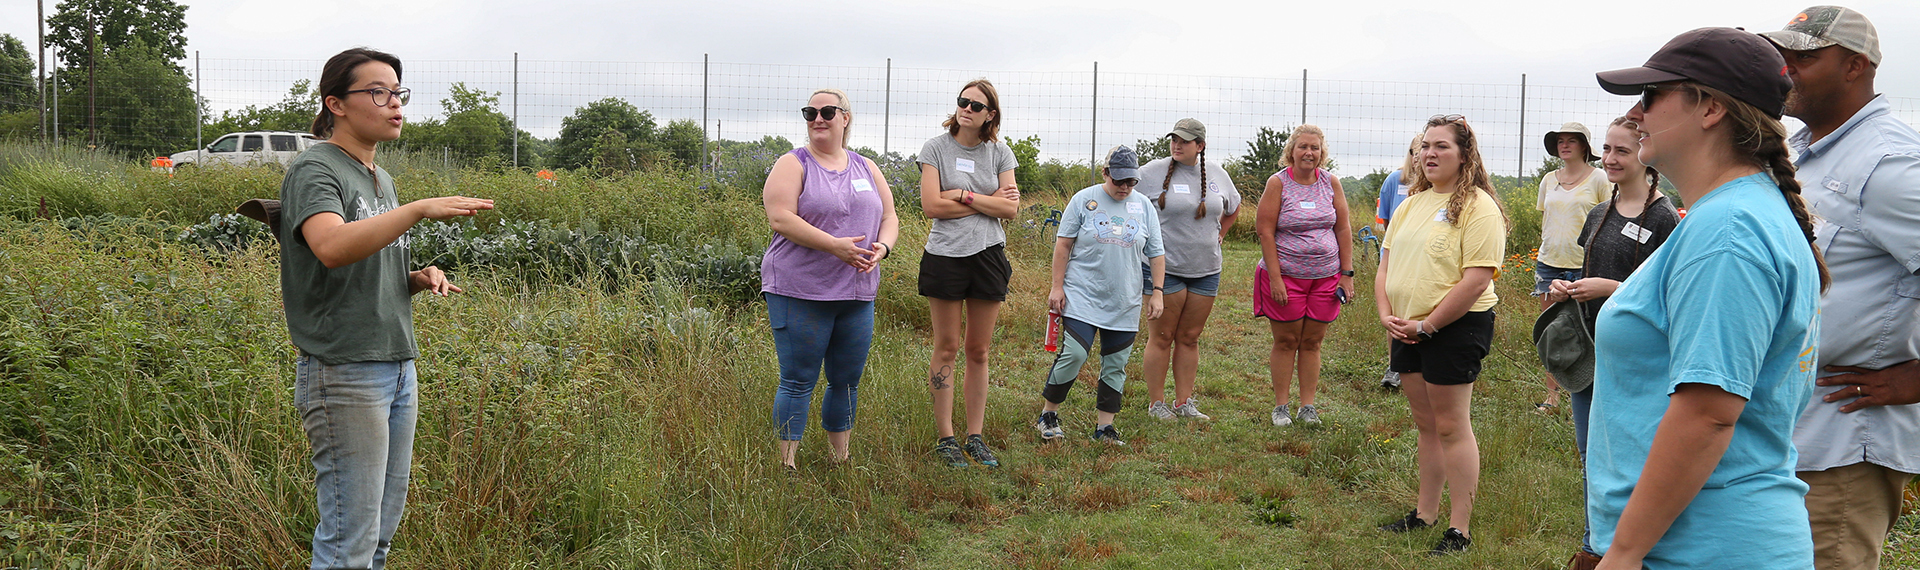 Teachers stand in a crop field at the UGArden learning about produce